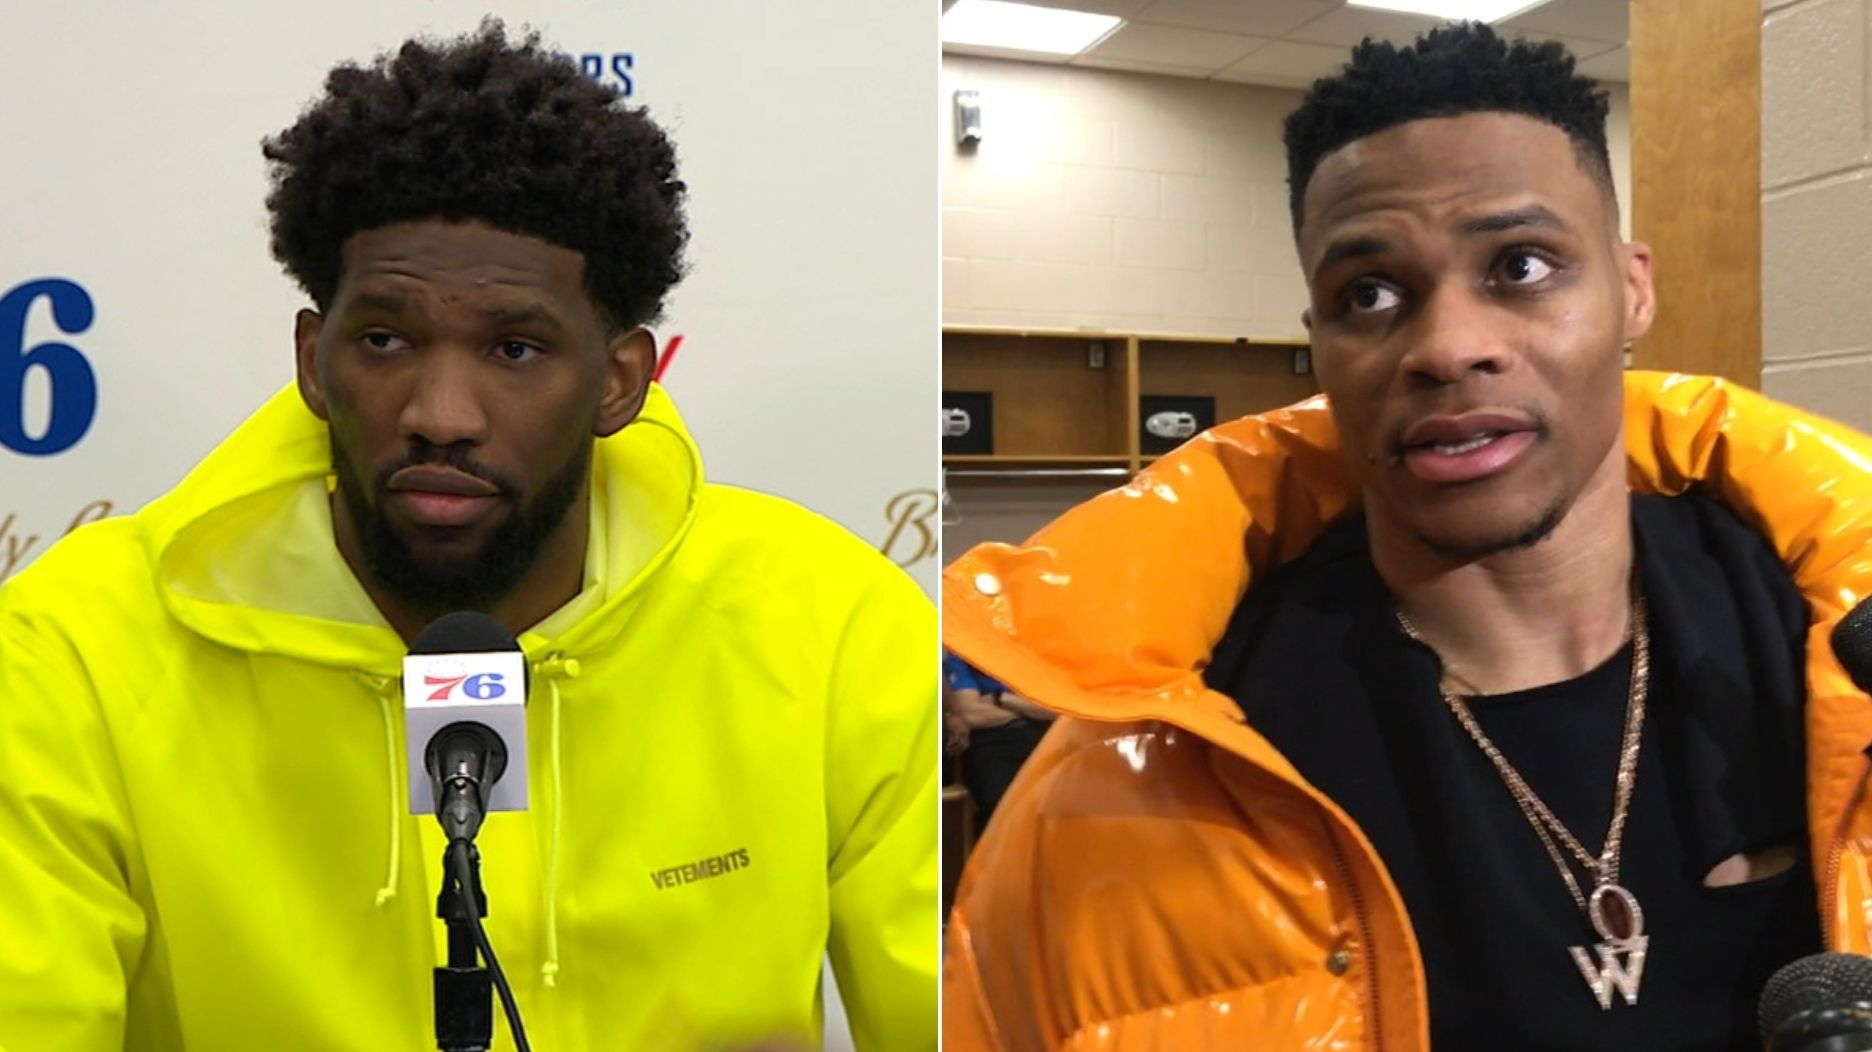 Russell Westbrook, Joel Embiid add another chapter to rivalry after latest dust-up